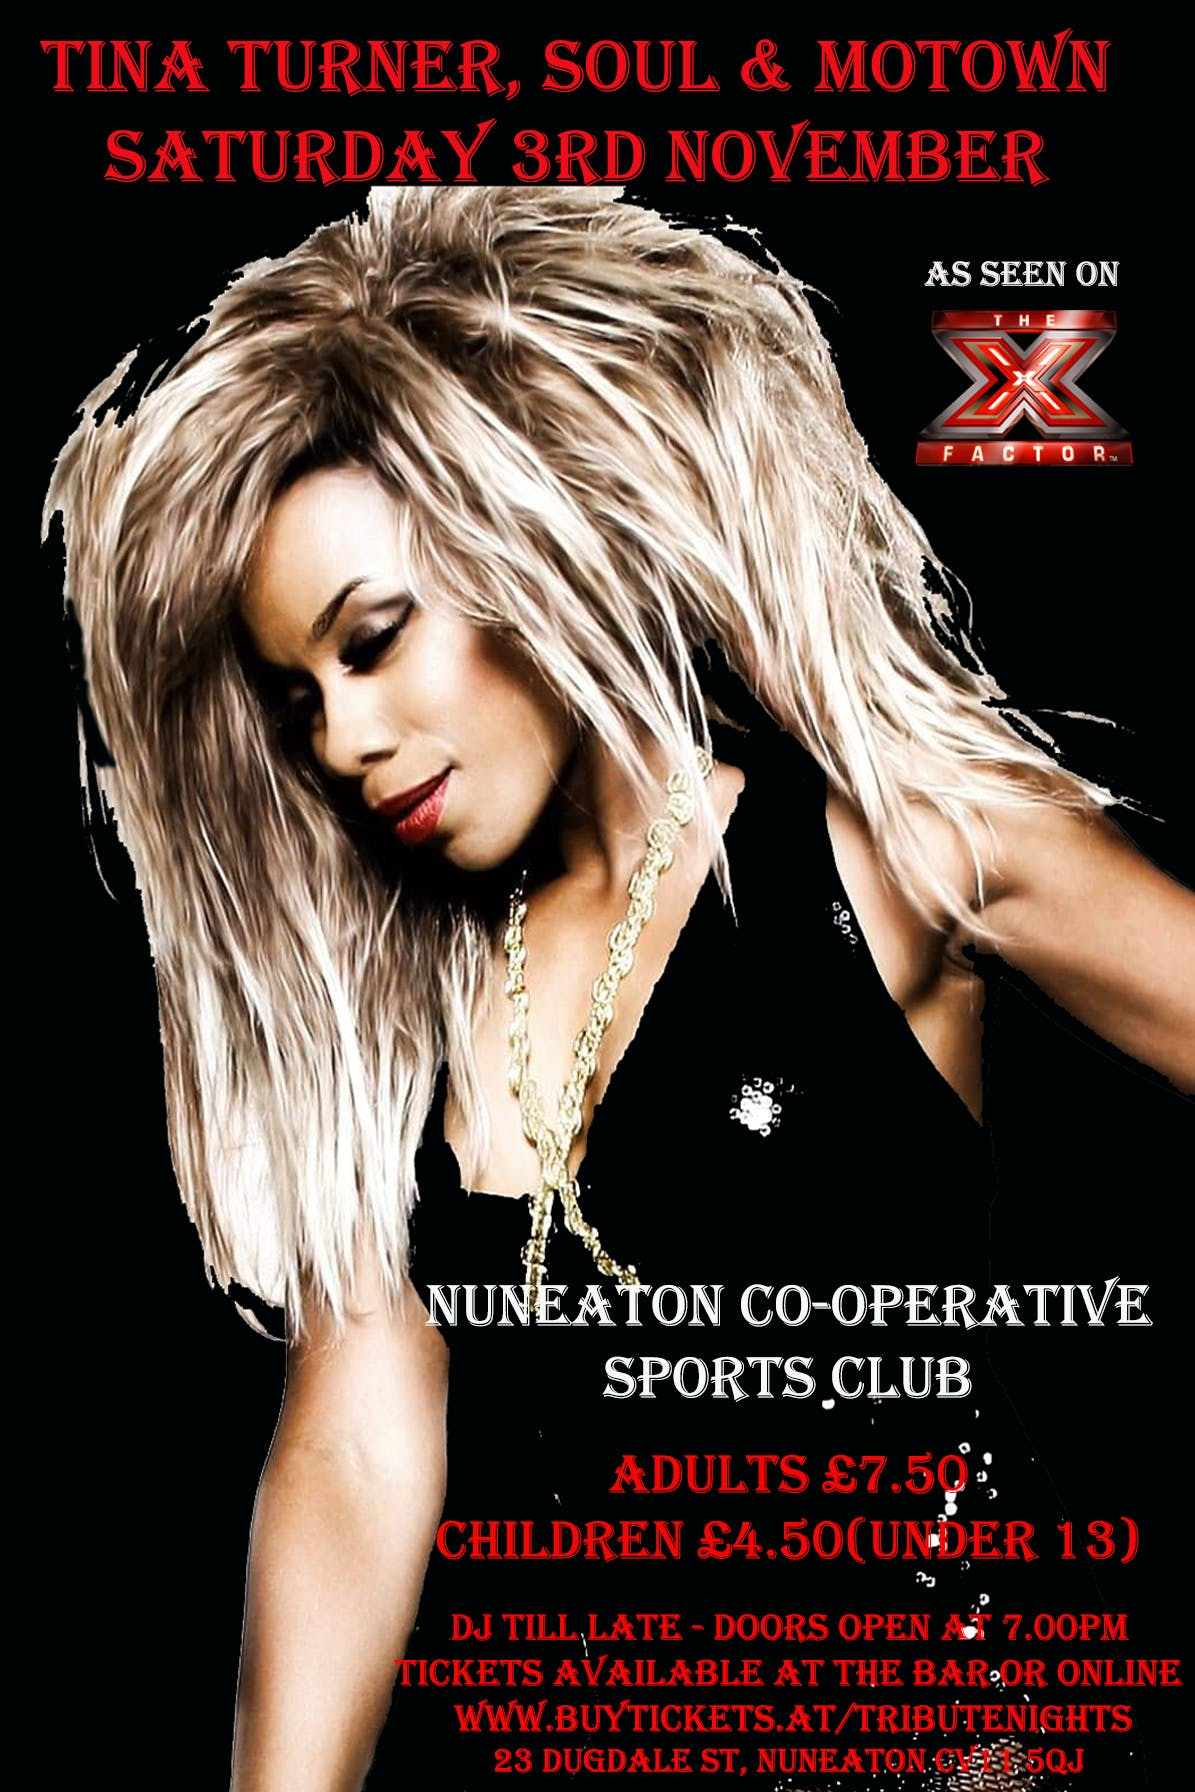 Tina Turner, Soul & Motown Night - Nuneaton